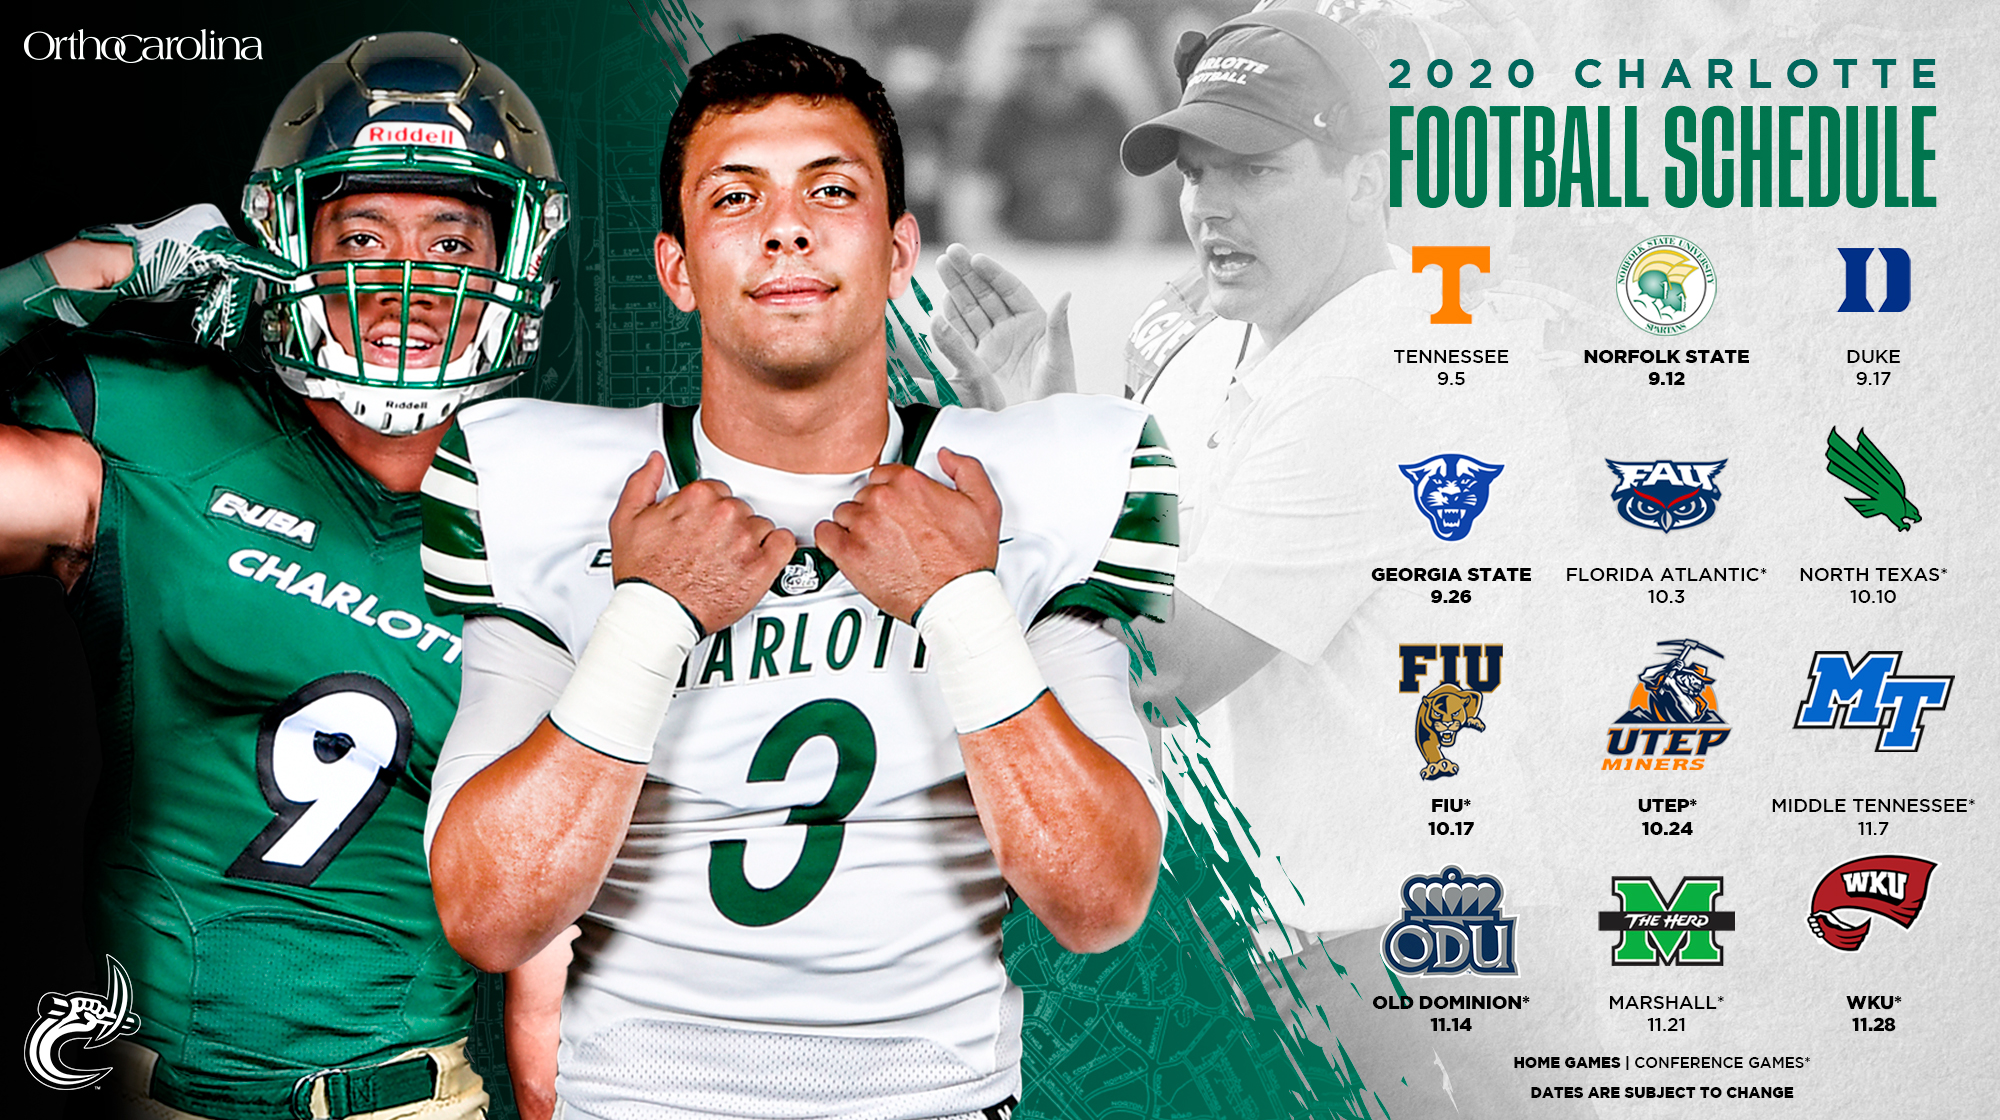 Healy Announces 2020 Football Schedule Charlotte Athletics